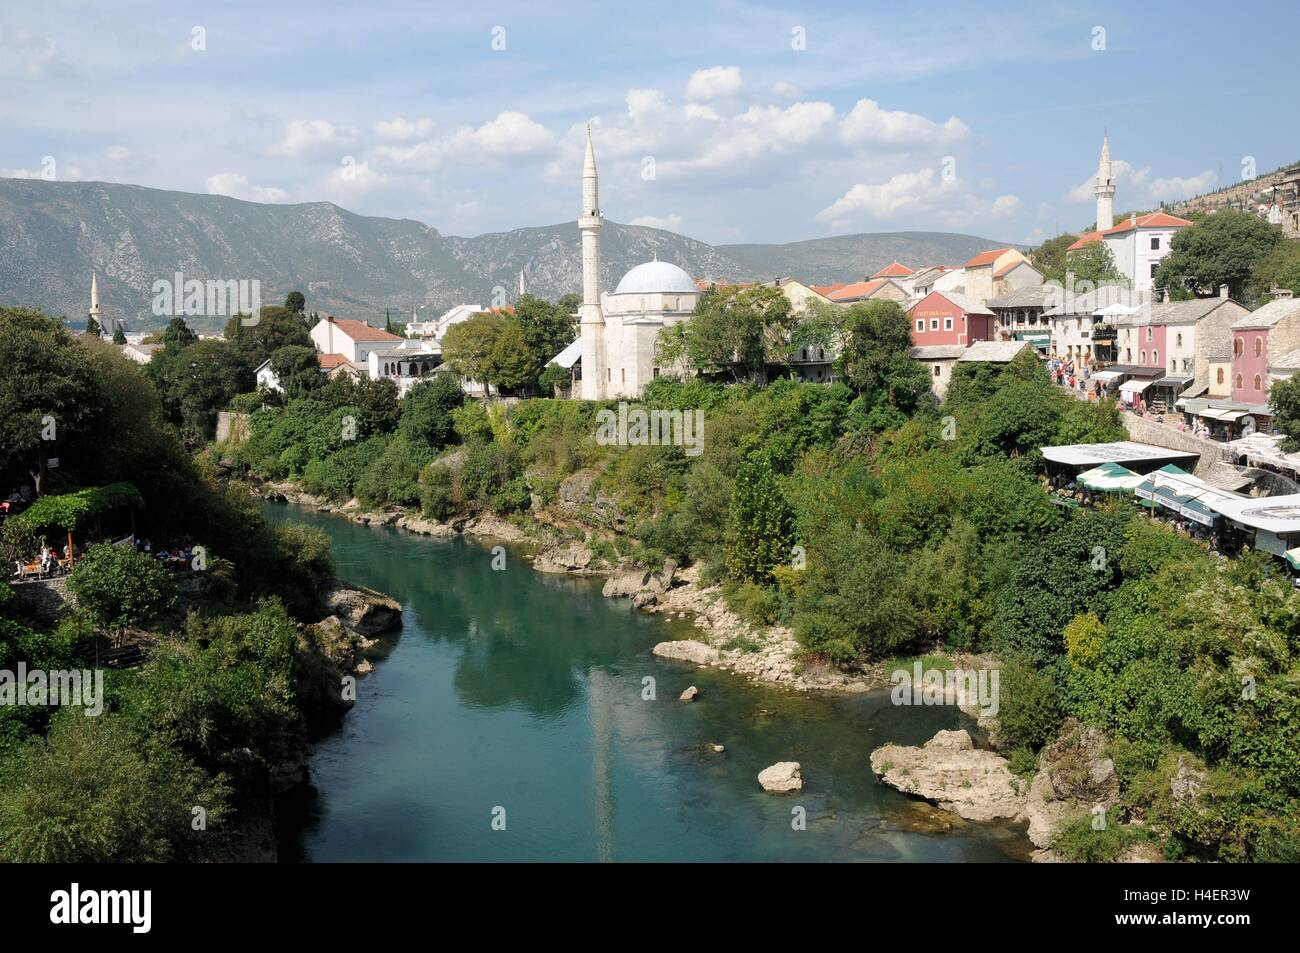 The view off the Stari Most bridge, Mostar, Bosnia Herzegovina - Stock Image